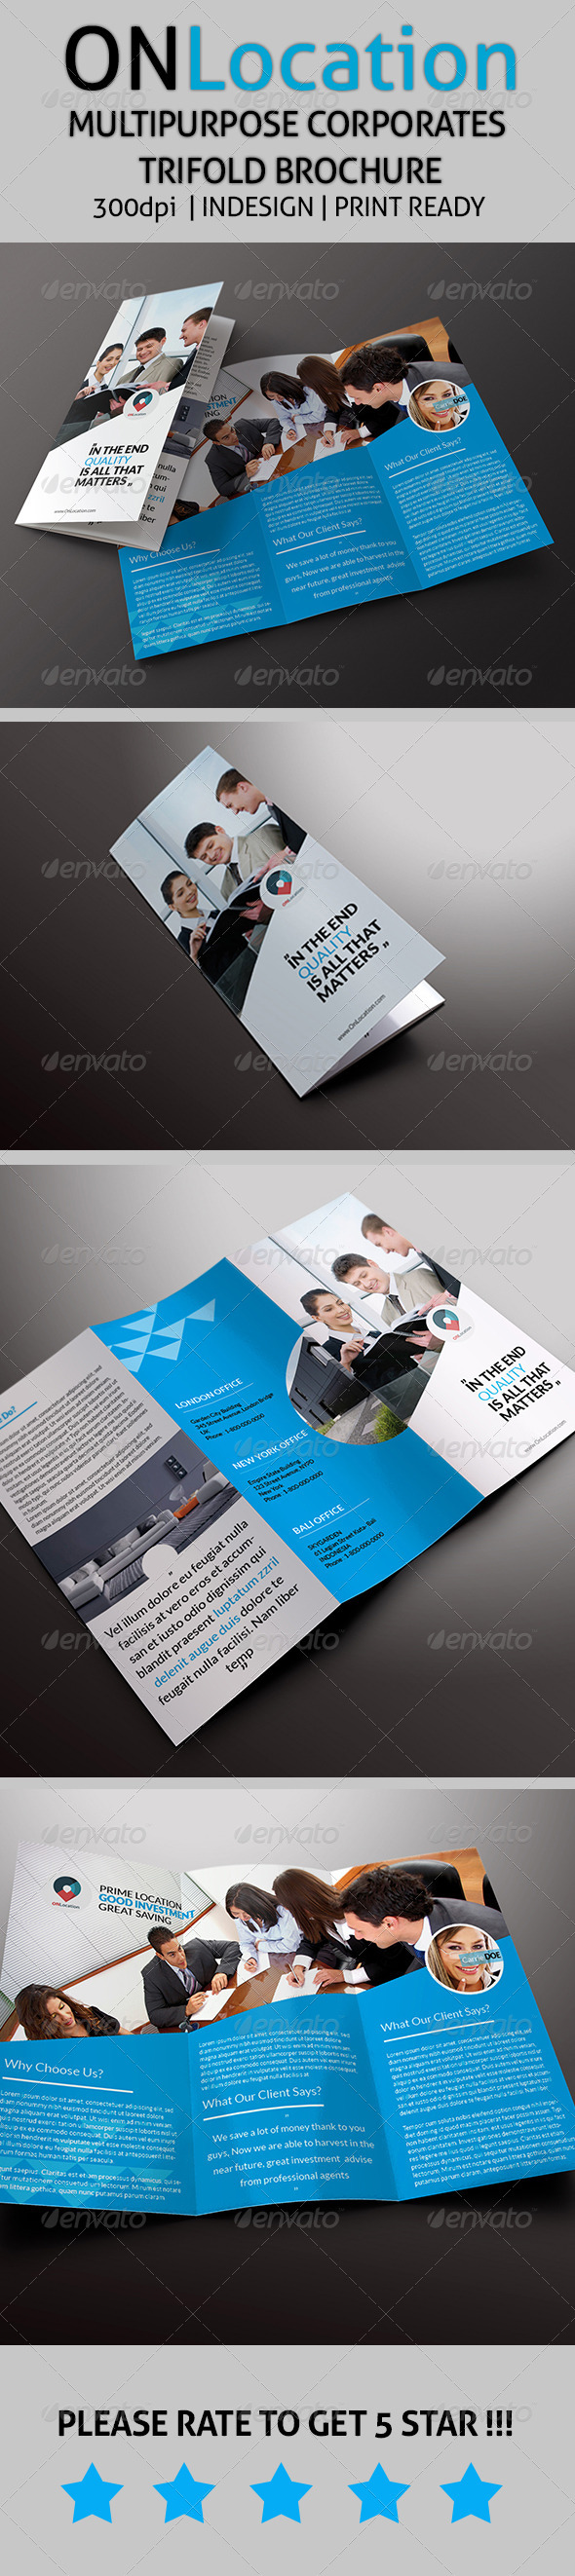 OnLocation - Corporate Trifold Brochure